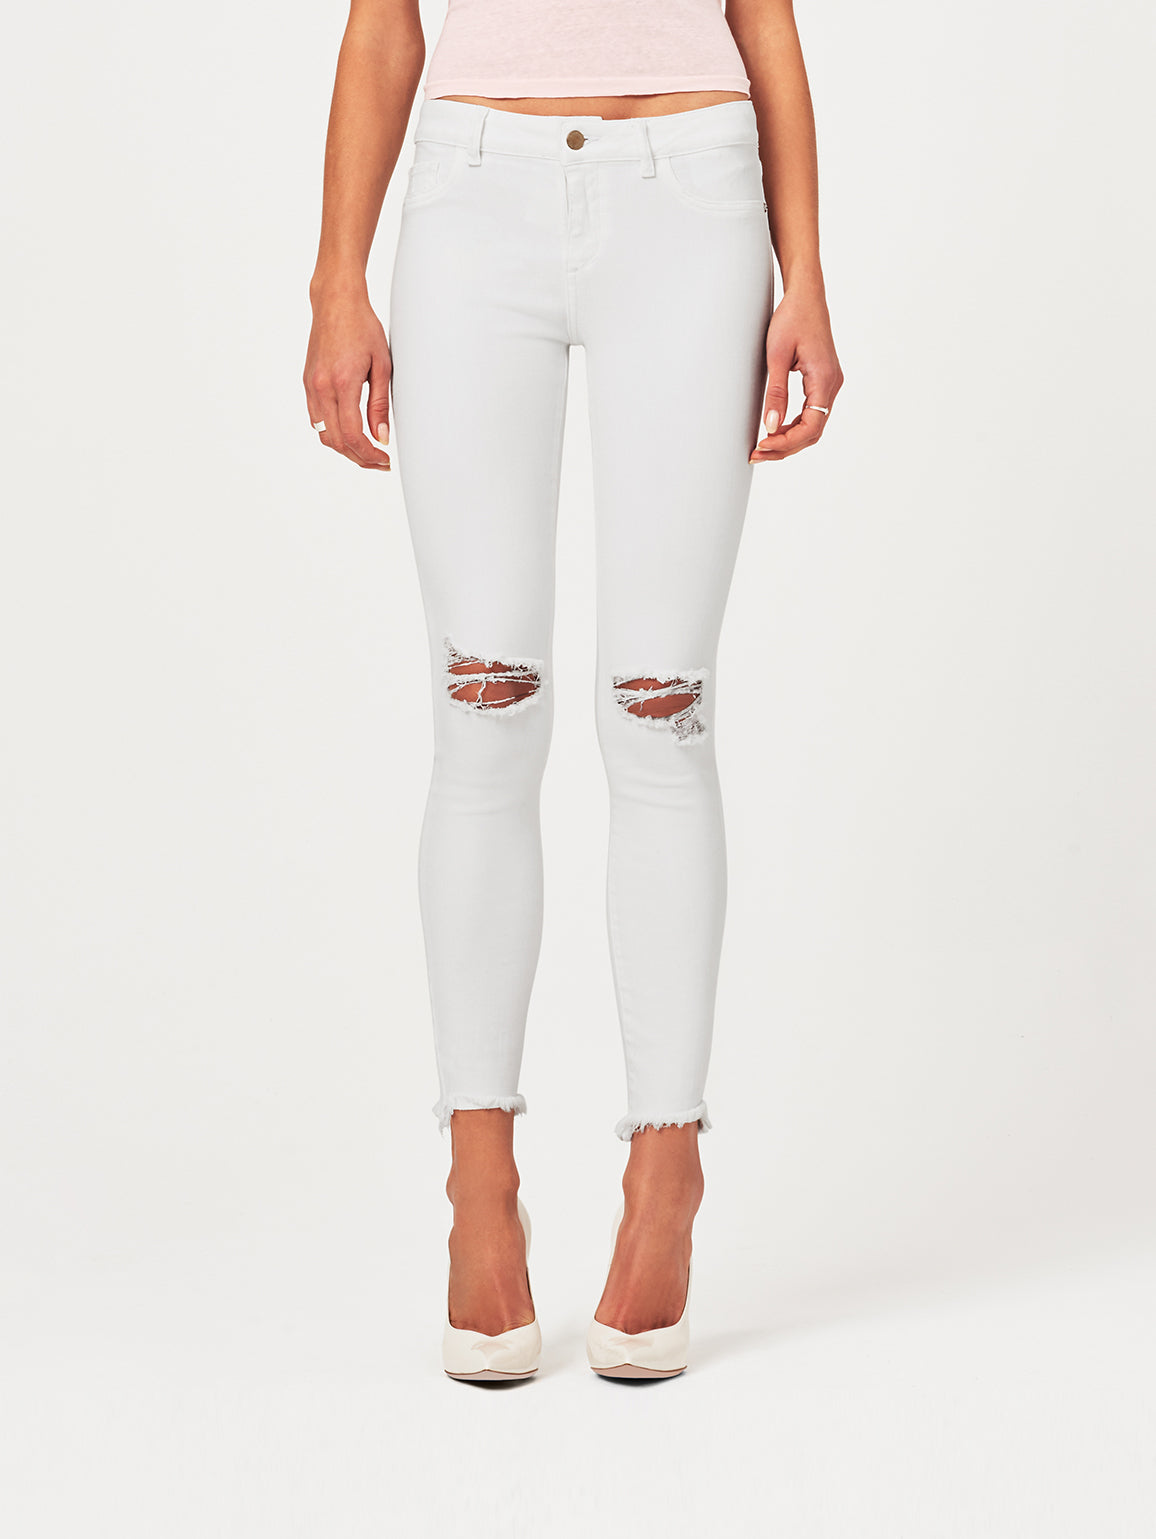 Margaux Mid Rise Ankle Skinny | Newport DL 1961 Denim